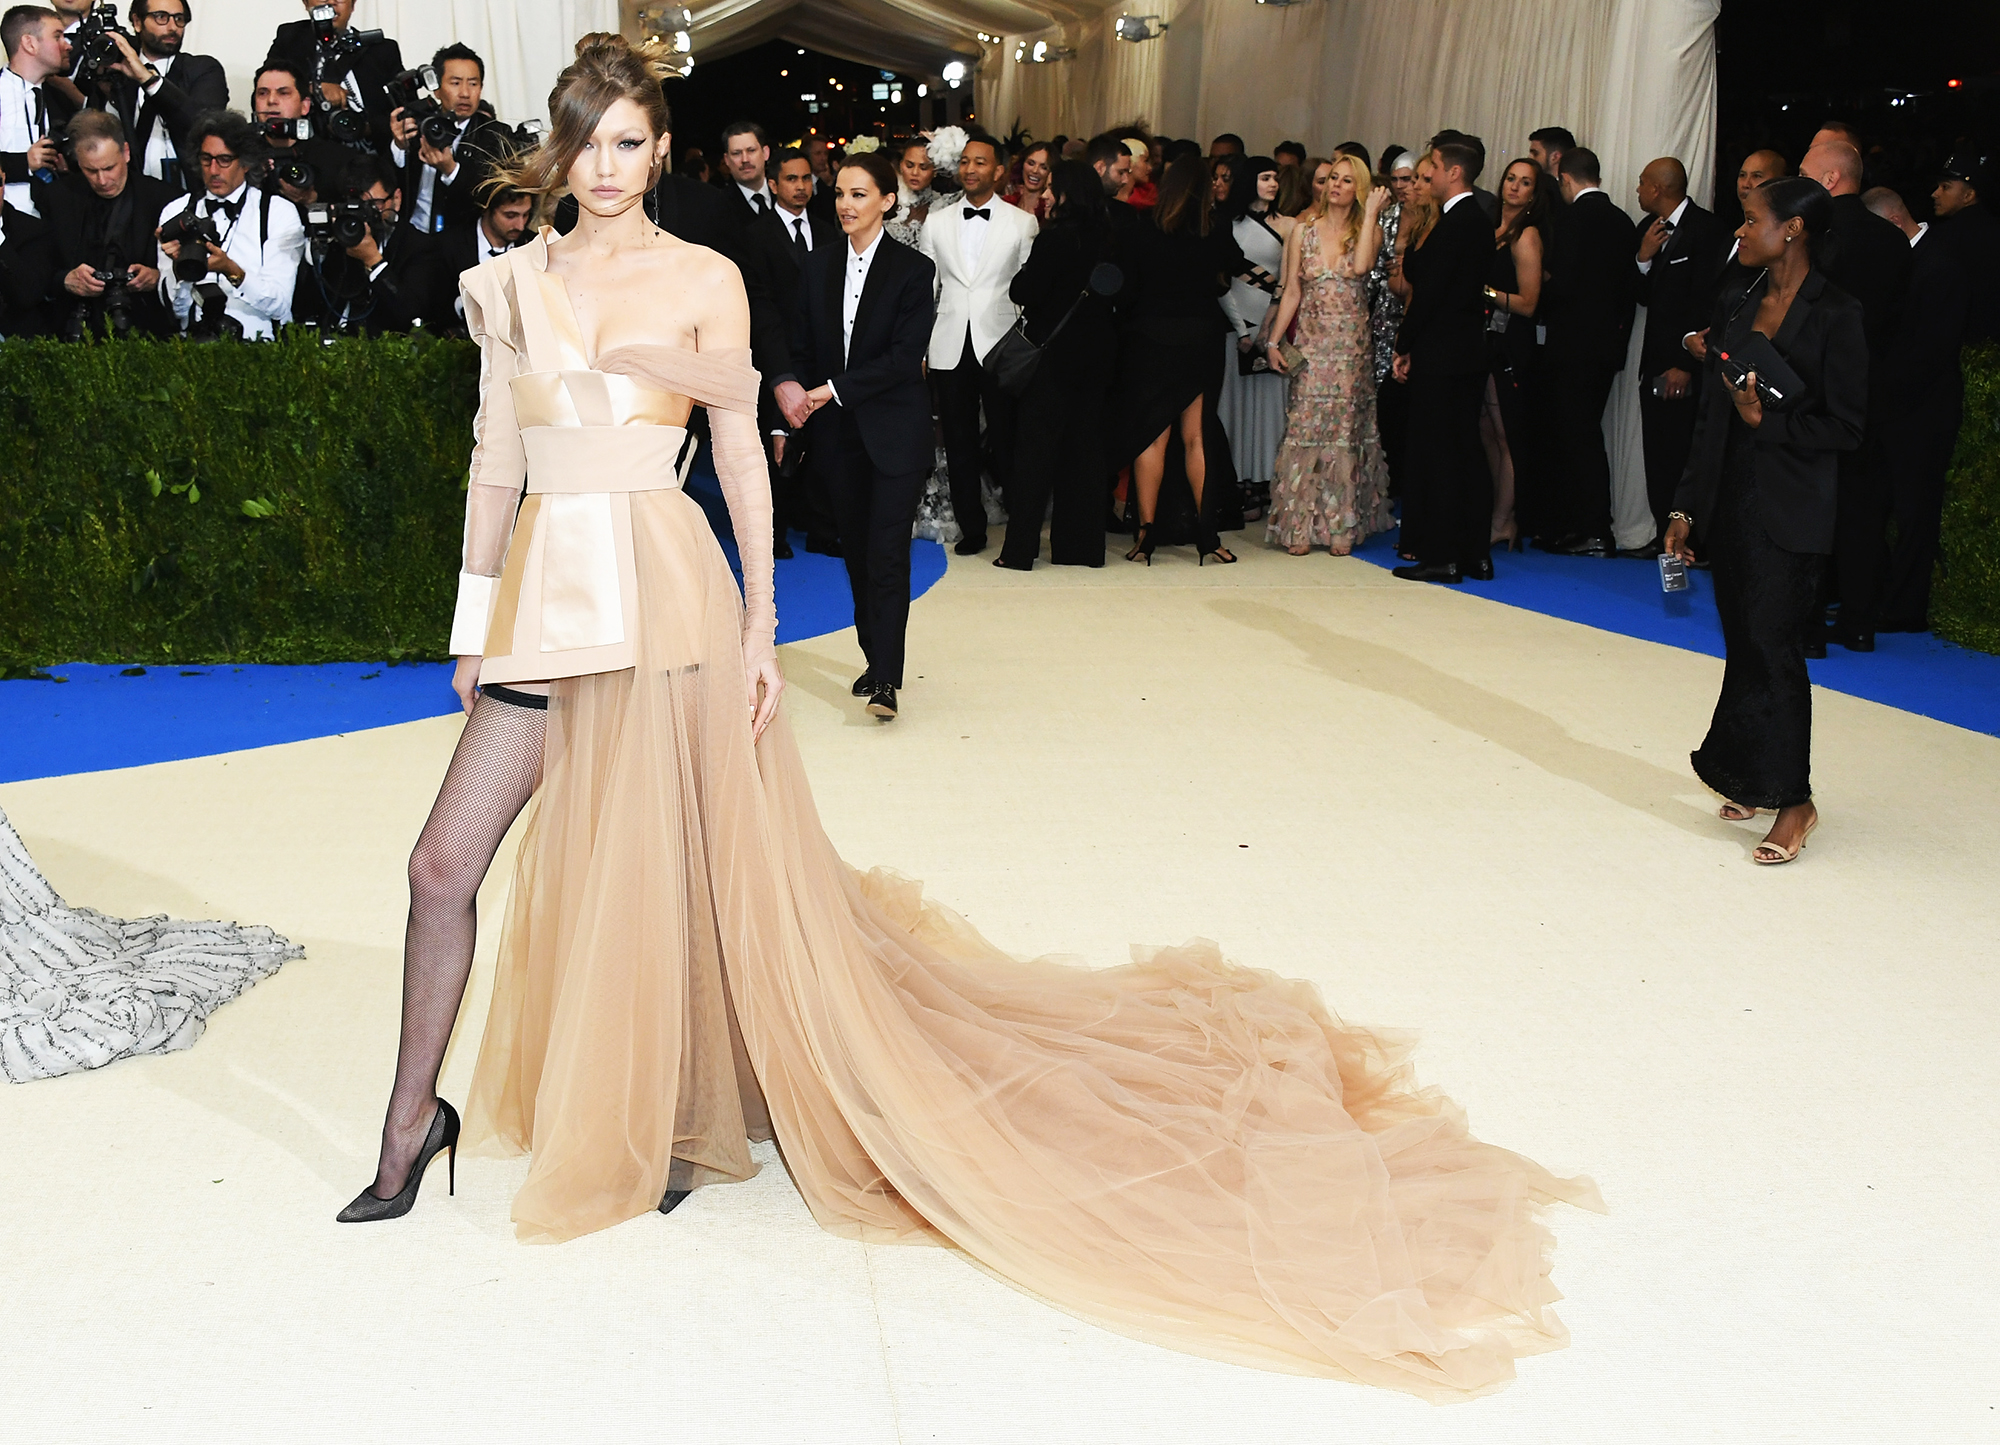 Gigi Hadid attends The Metropolitan Museum of Art's Costume Institute benefit gala celebrating the opening of the Rei Kawakubo/Comme des Garçons: Art of the In-Between exhibition in New York City, on May 1, 2017.